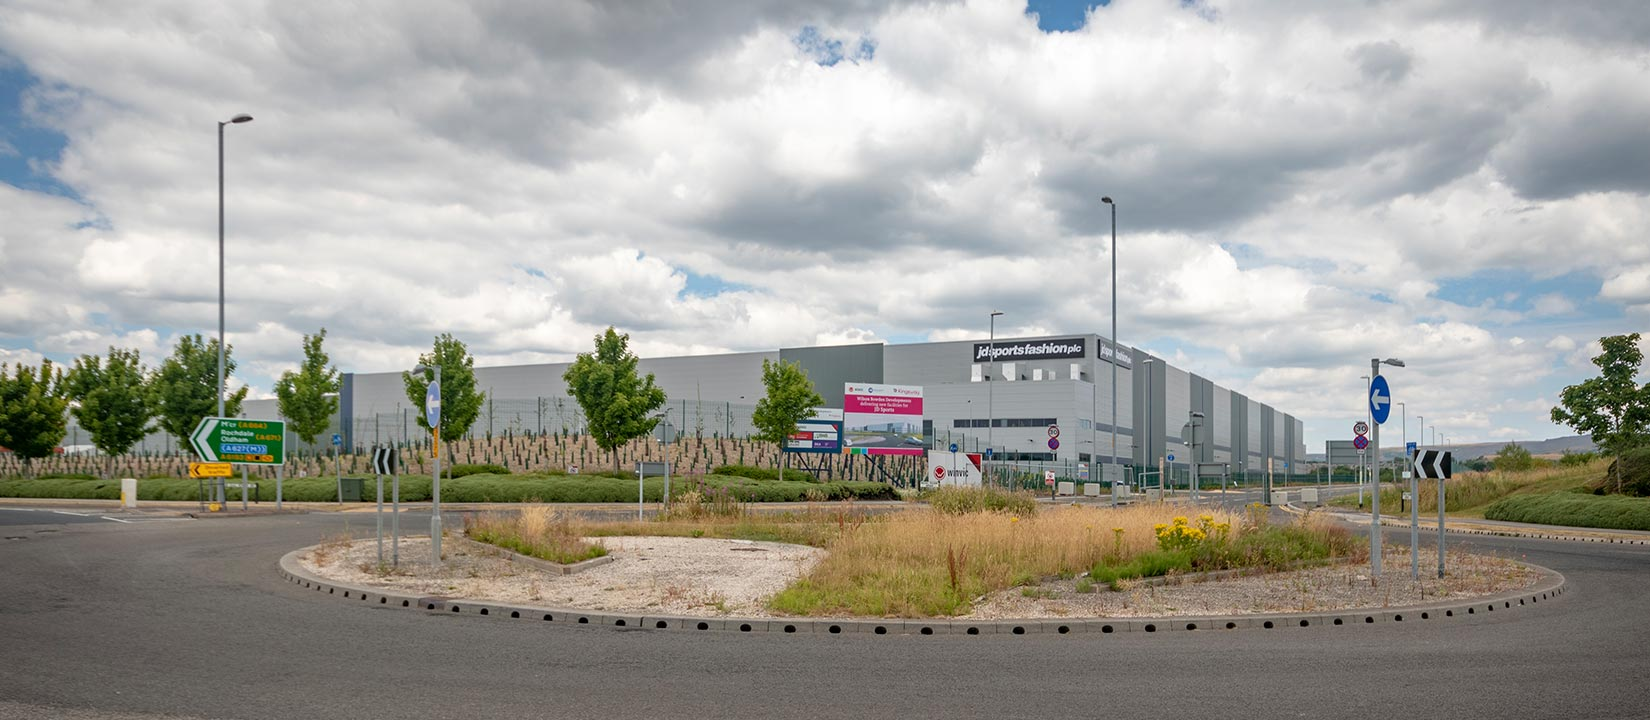 Kingsway Business Park, Milnrow, Rochdale, JD Sports Fasion approach